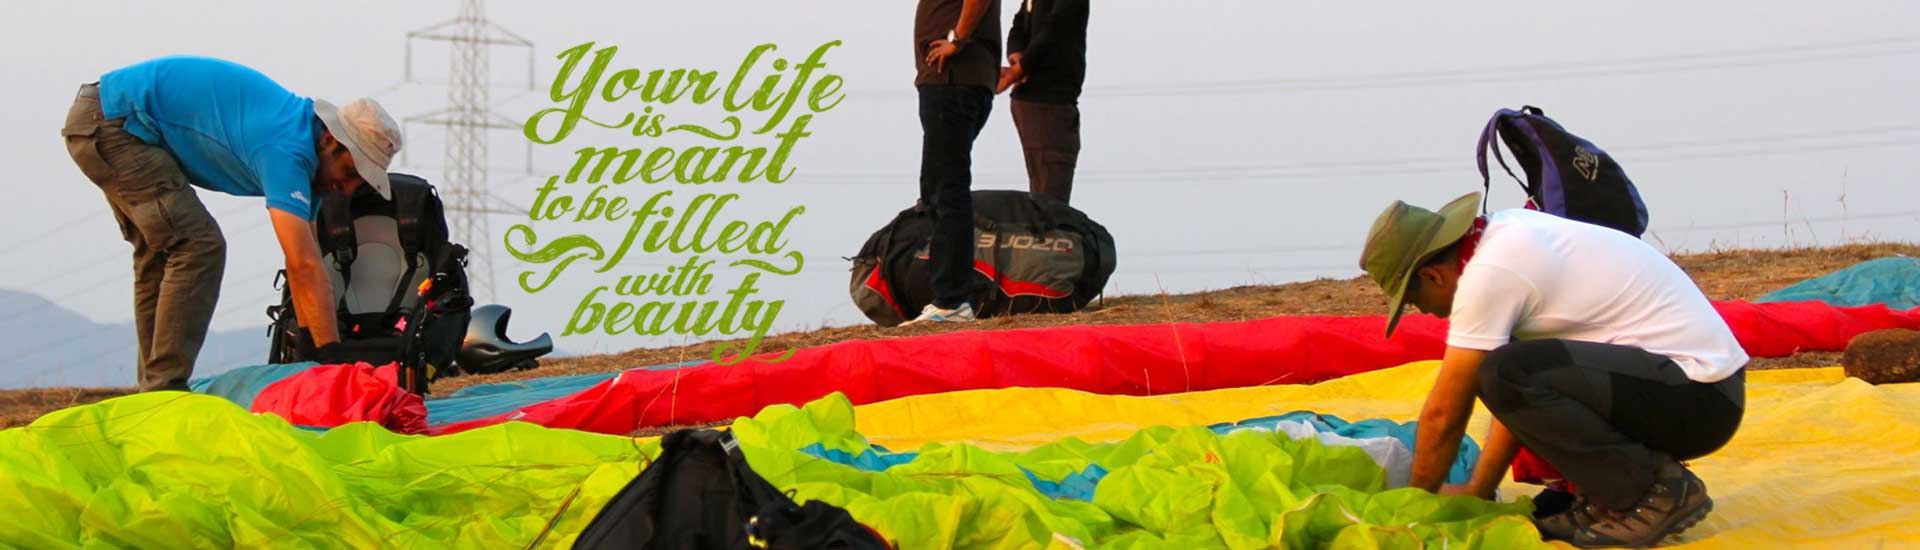 Buy Paragliding Equipment in India - Temple Pilots